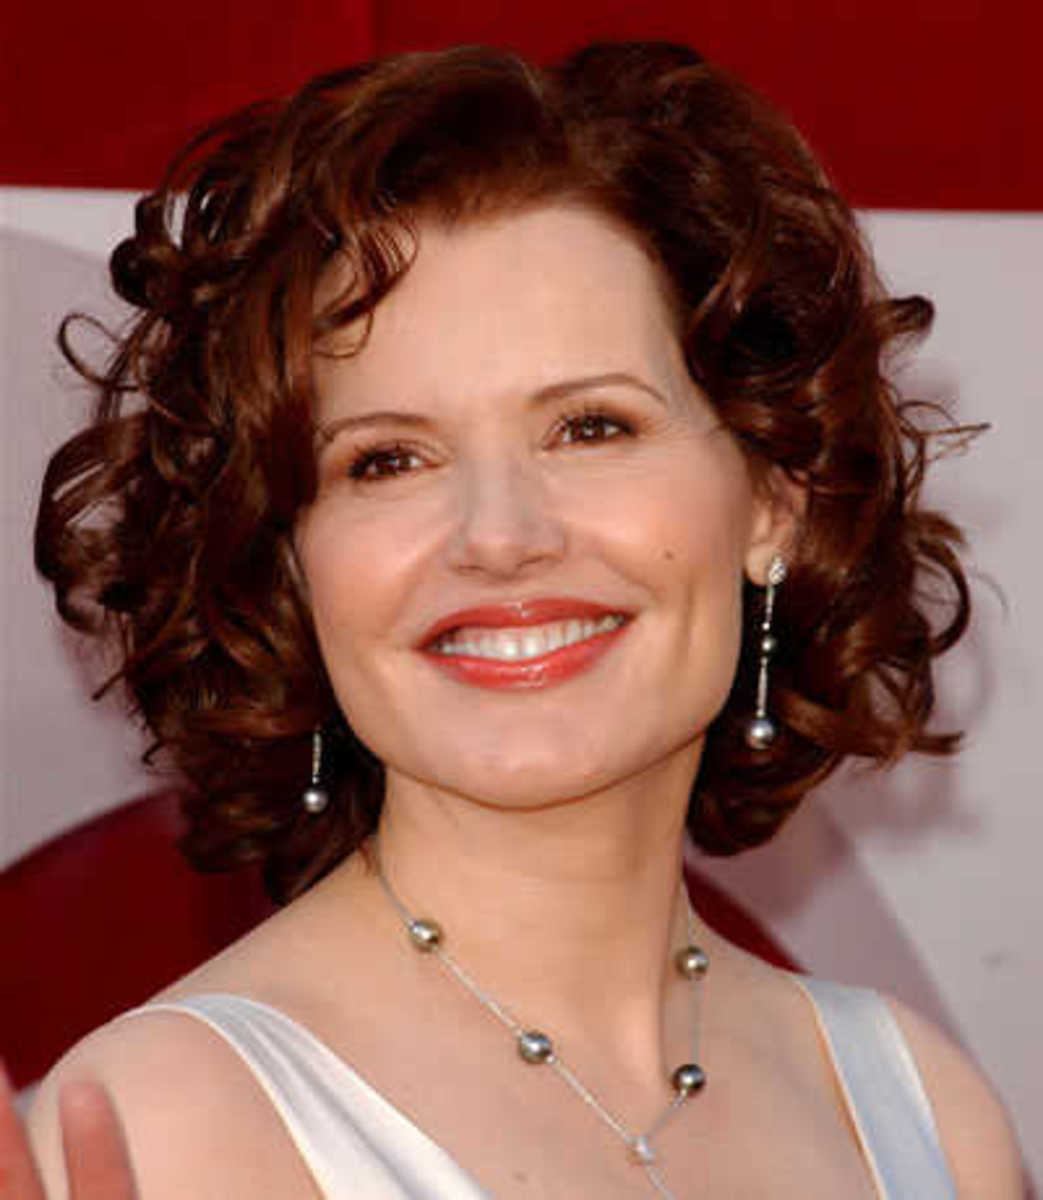 Geena Davis's cute short curly hairstyle